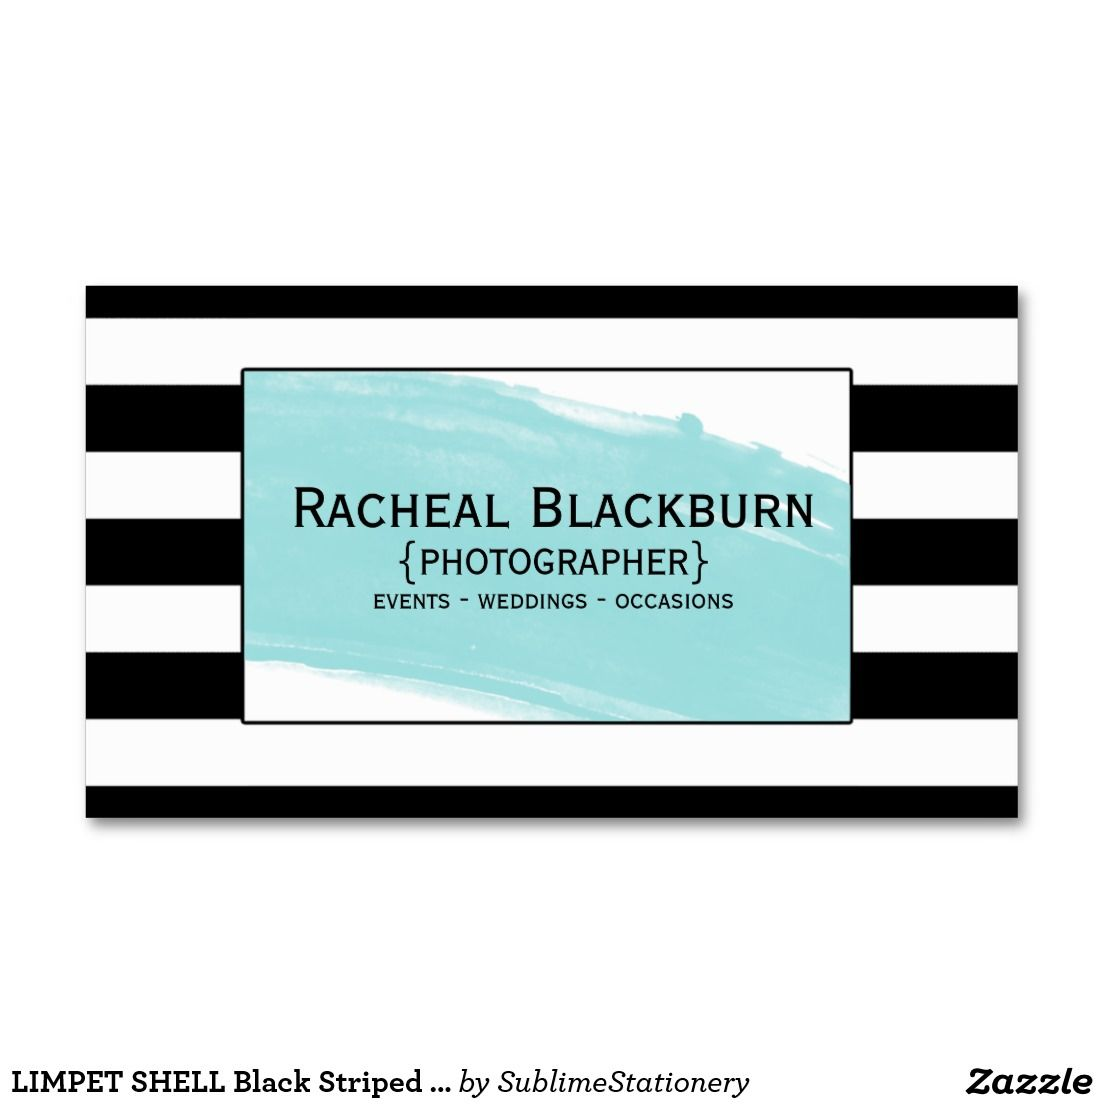 Limpet shell black striped watercolor photography business card limpet shell black striped watercolor photography business card reheart Choice Image